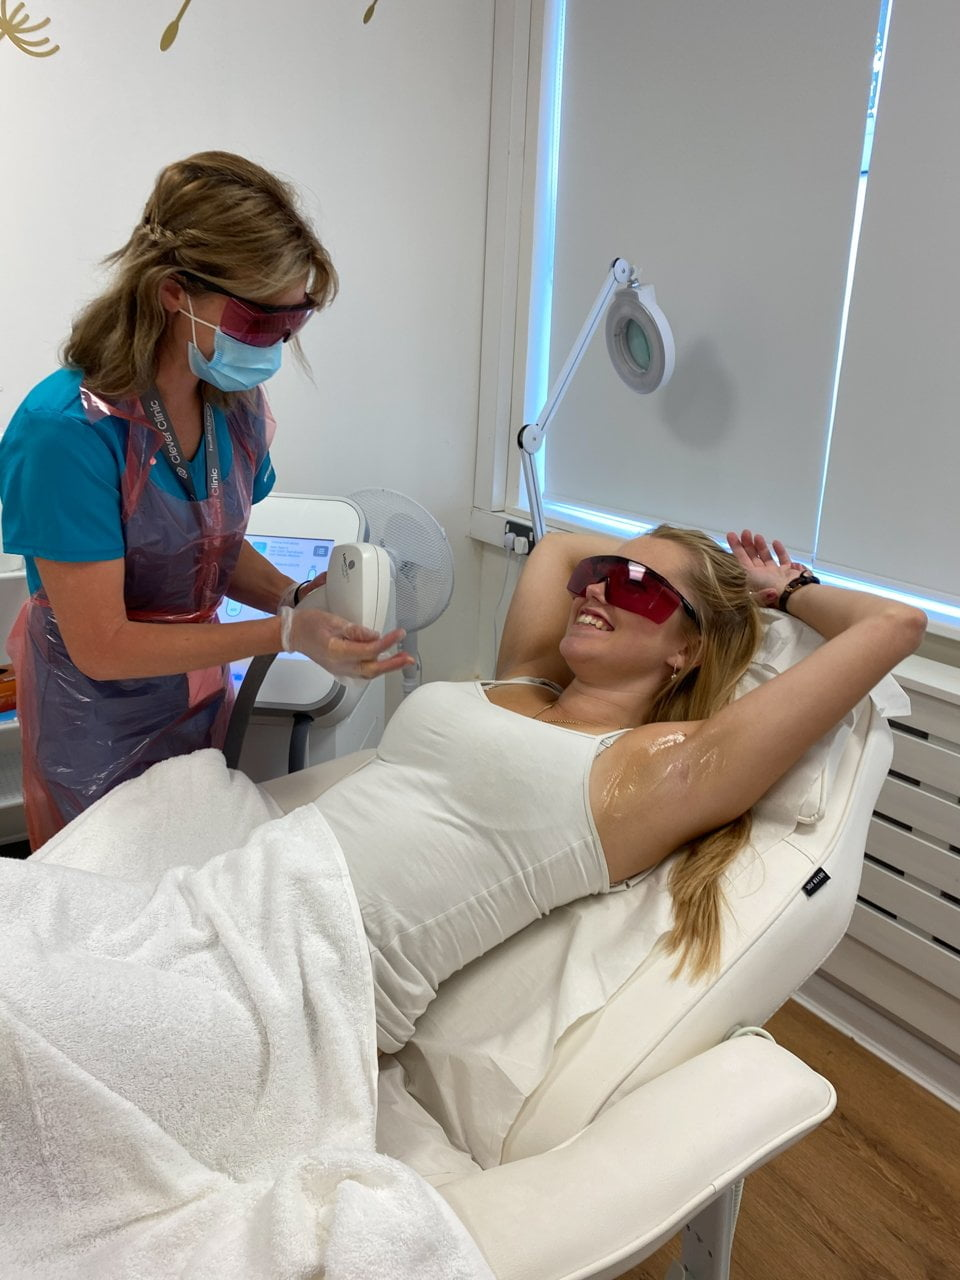 Laser hair removal on underarms